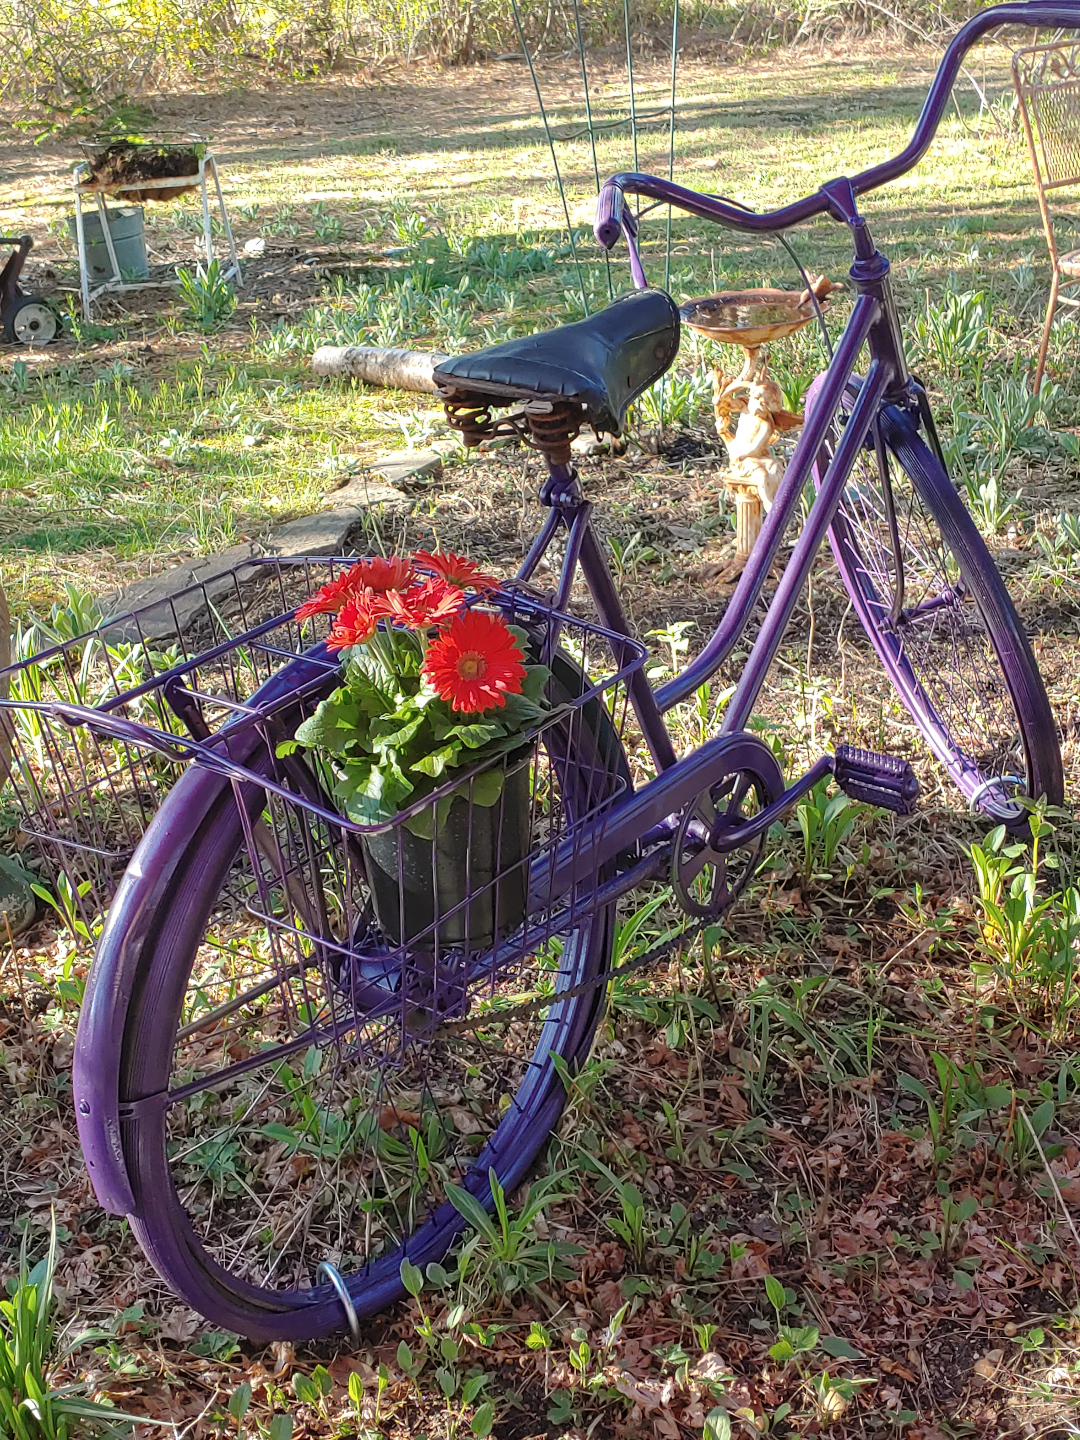 A bicycle painted purple with red daisies in the basket